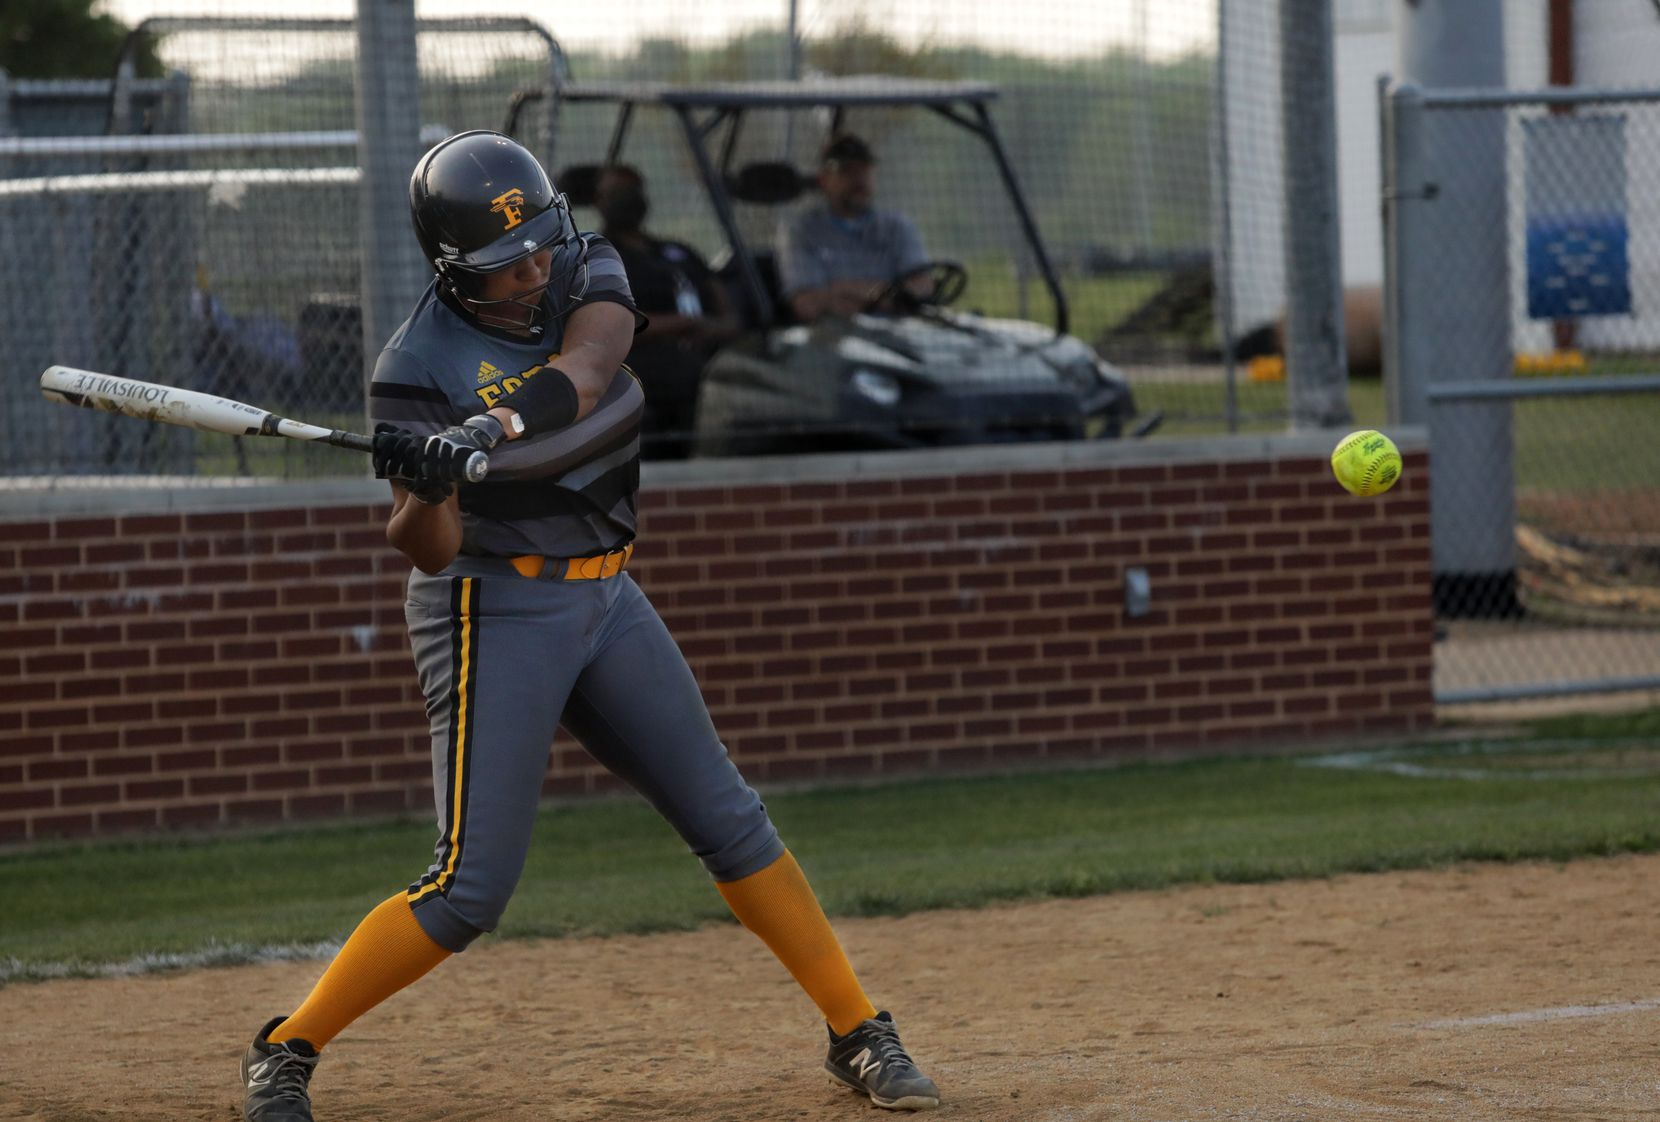 Vanessa Hollingsworth swings for the ball during a softball game between Forney at North Forney at North Forney High School in Forney, TX, on Apr. 9, 2021. (Jason Janik/Special Contributor)